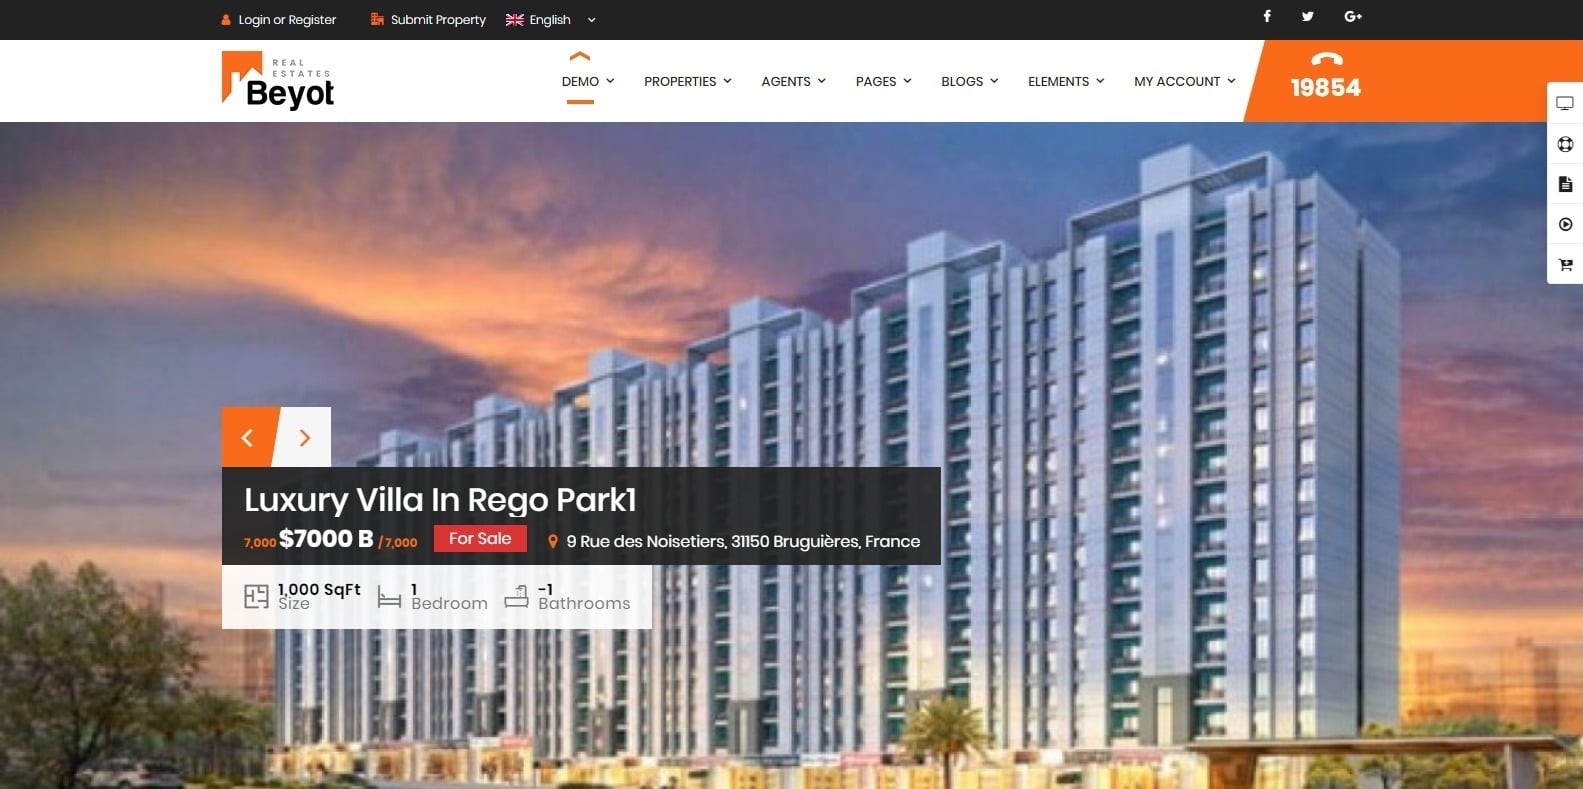 beyot-property-management-wordpress-website-template